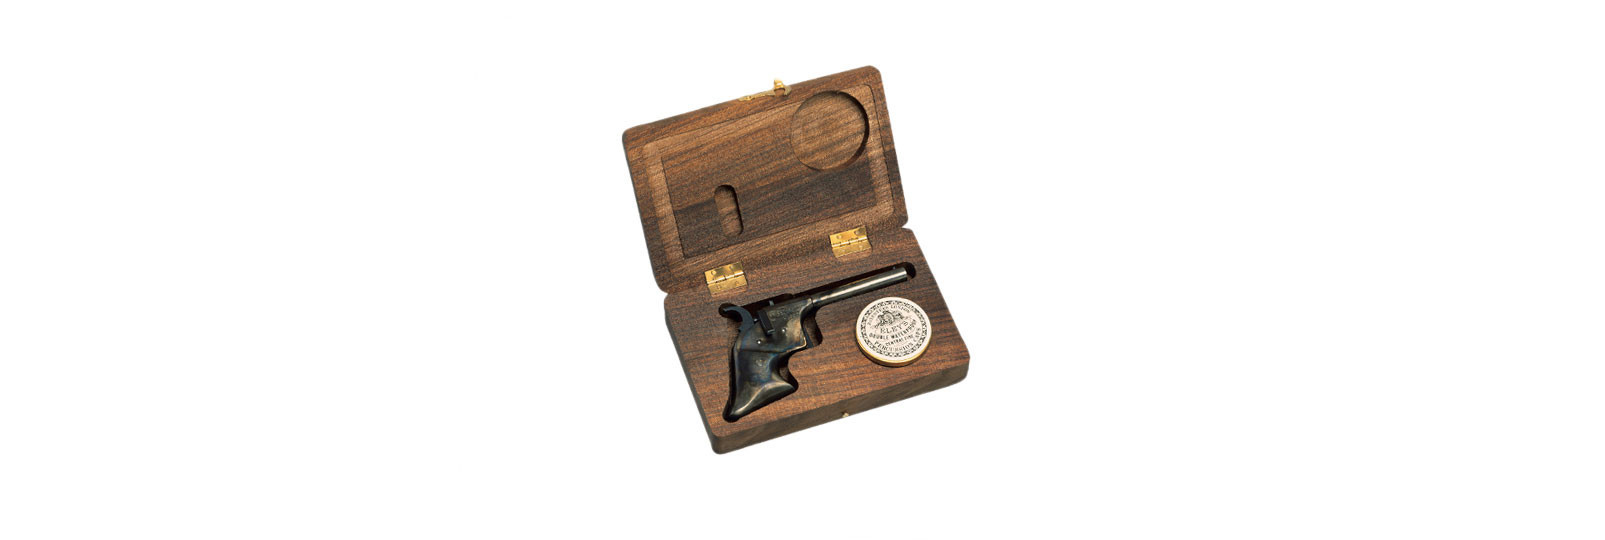 Derringer Rider hardened Pistol with case